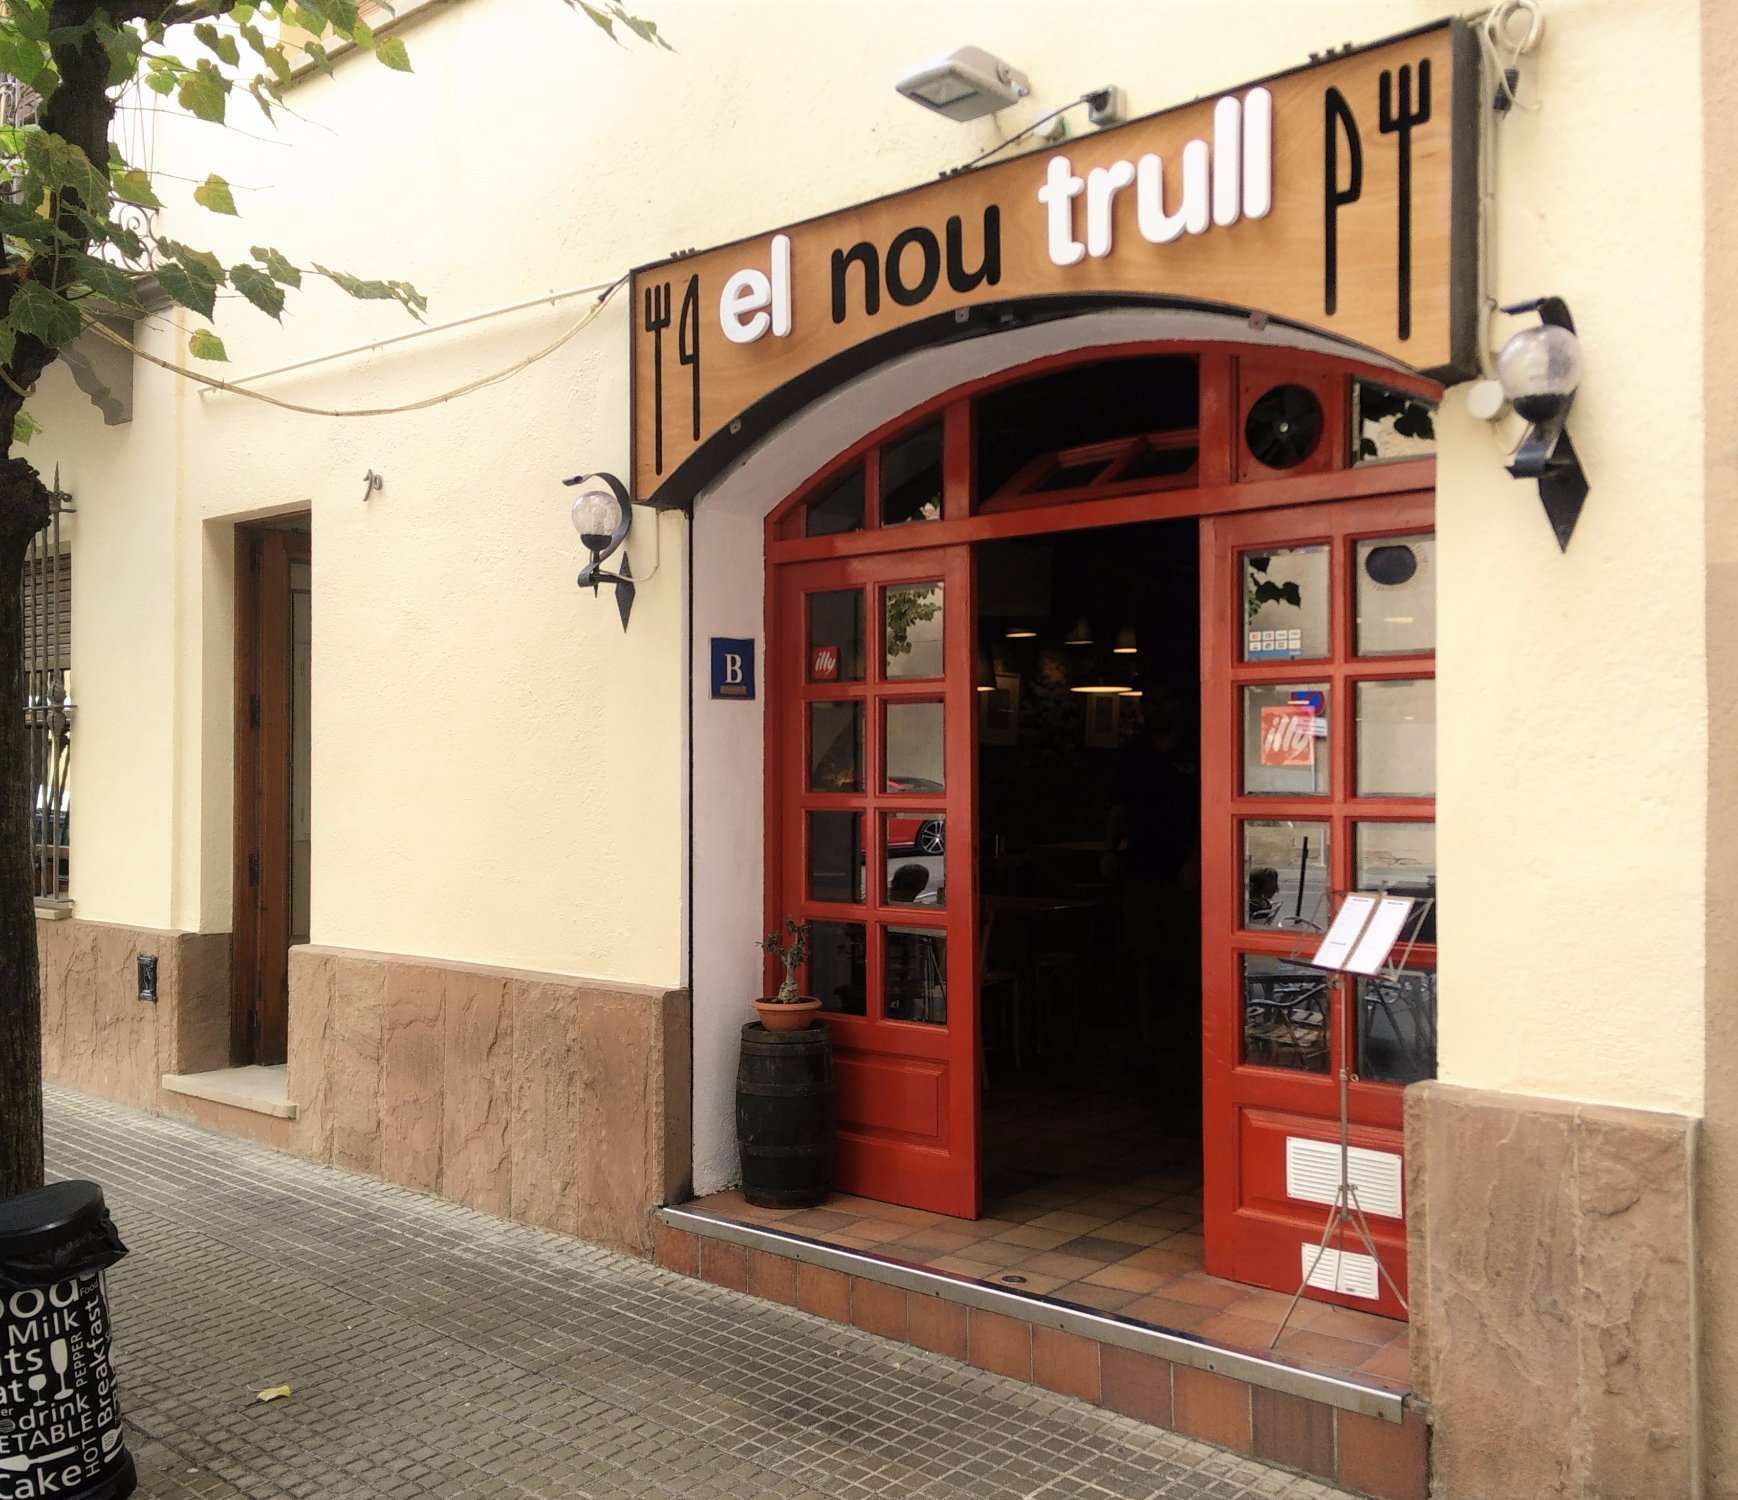 Most Popular Bar food in La Garriga, Province of Barcelona, Spain